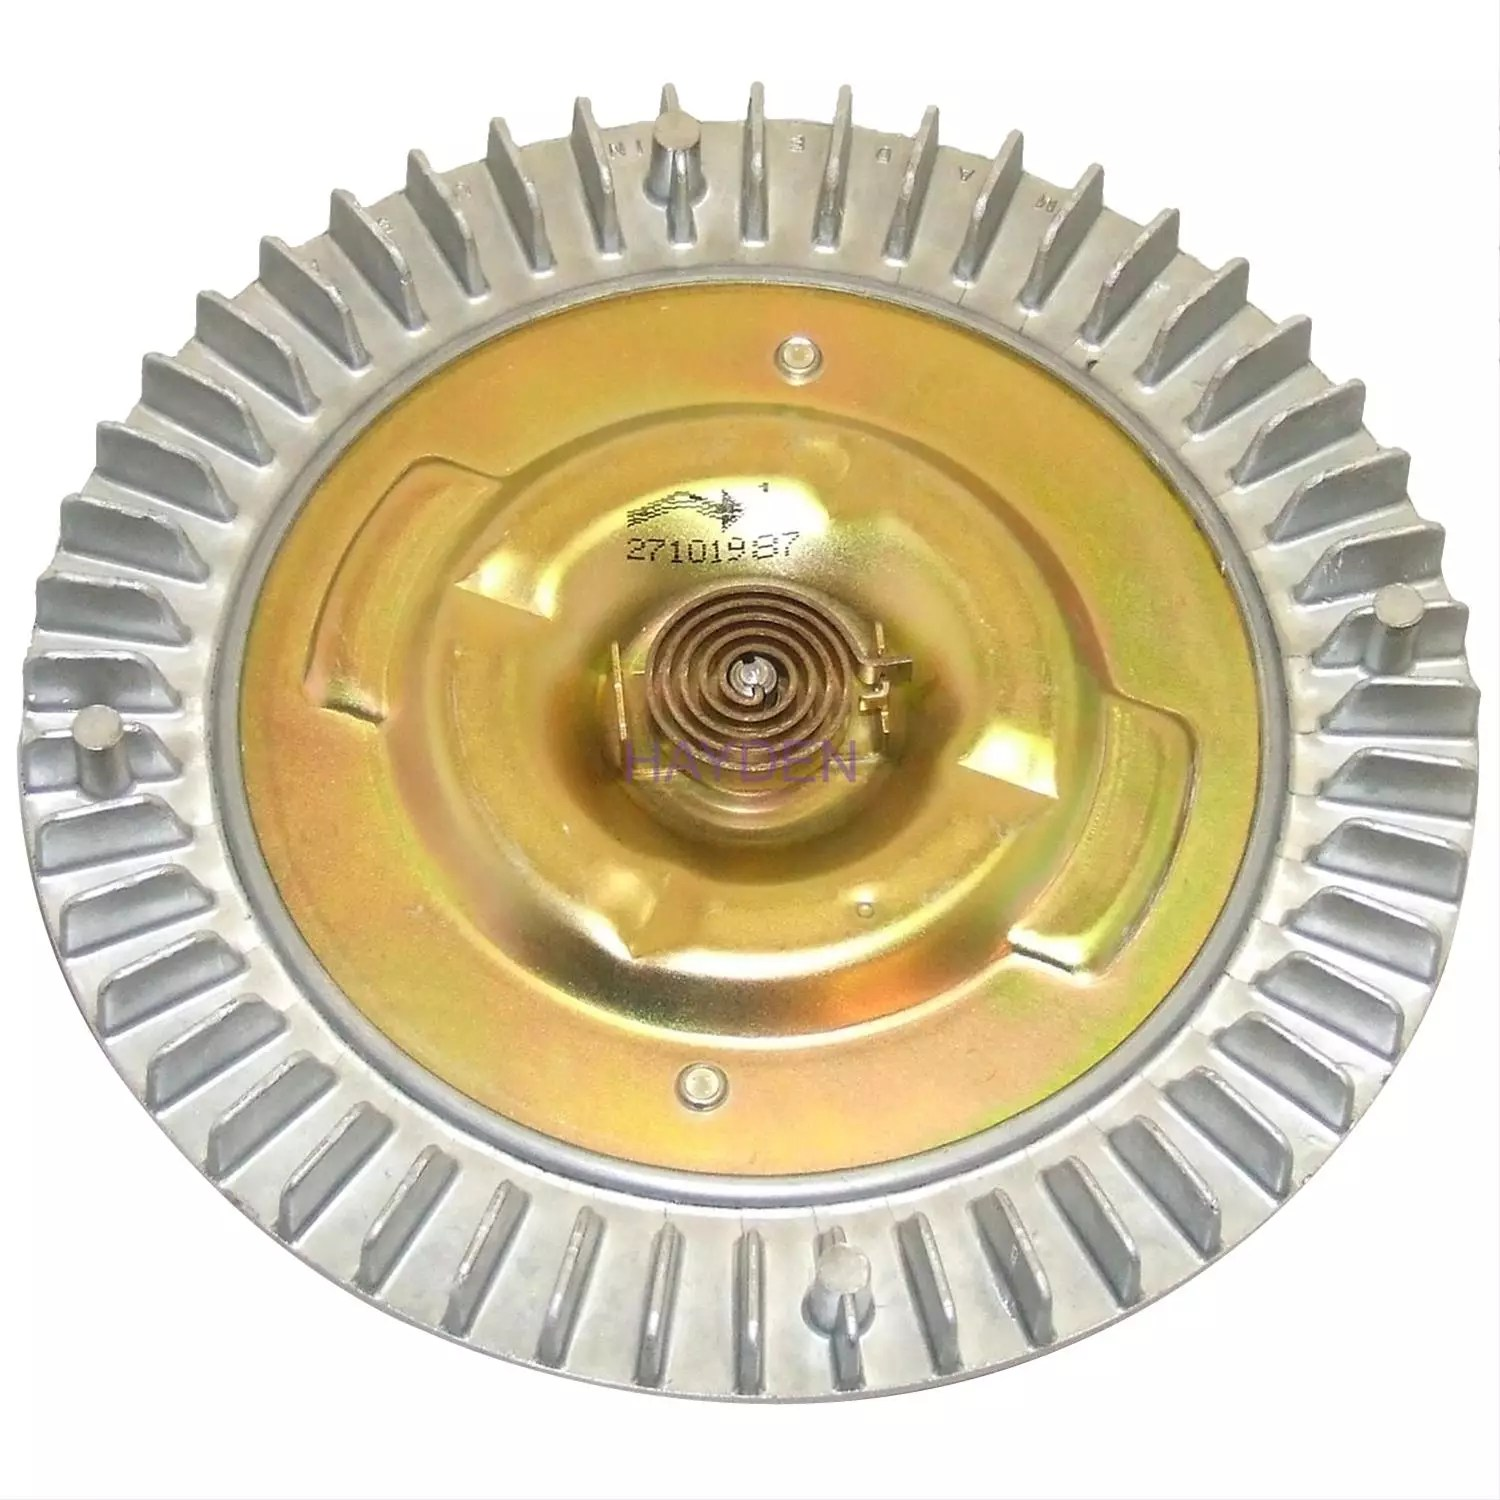 hight resolution of the thermal fan clutch operates in response to underhood temperatures as hot air blows across the radiator it heats a thermal spring mounted at the front